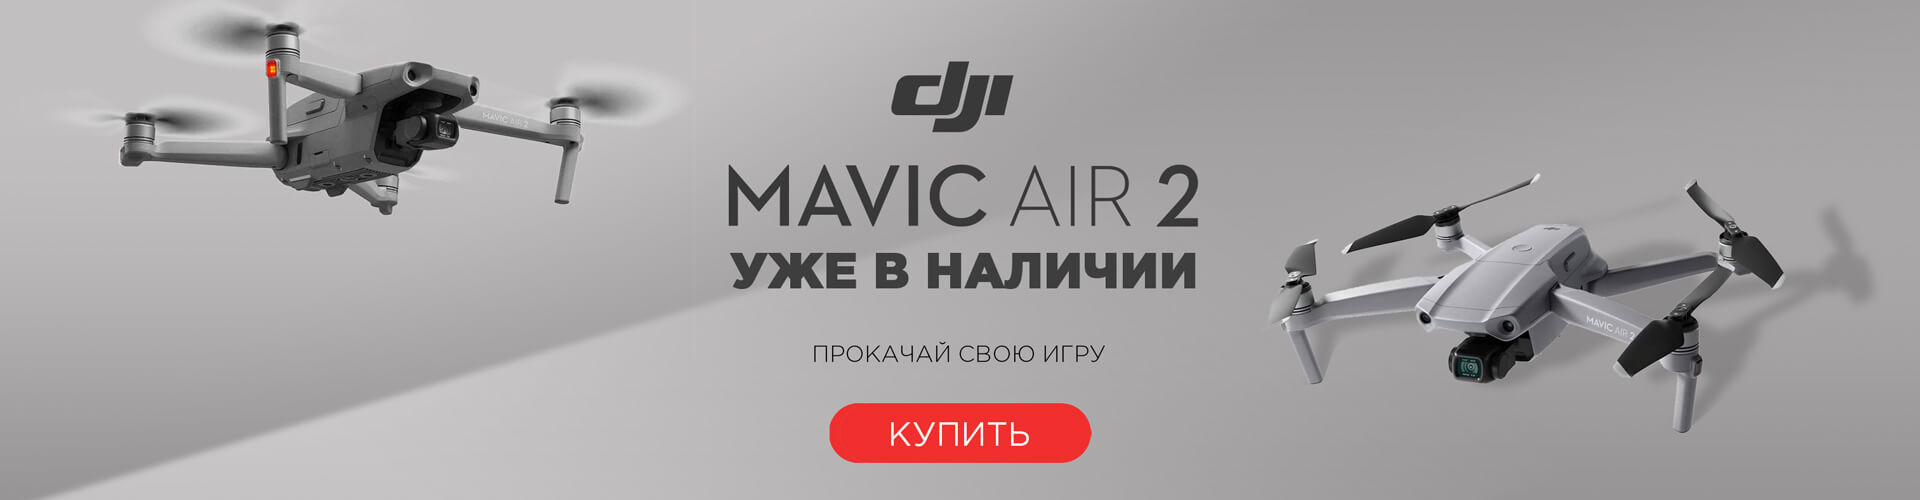 Banner Mavic Air 2